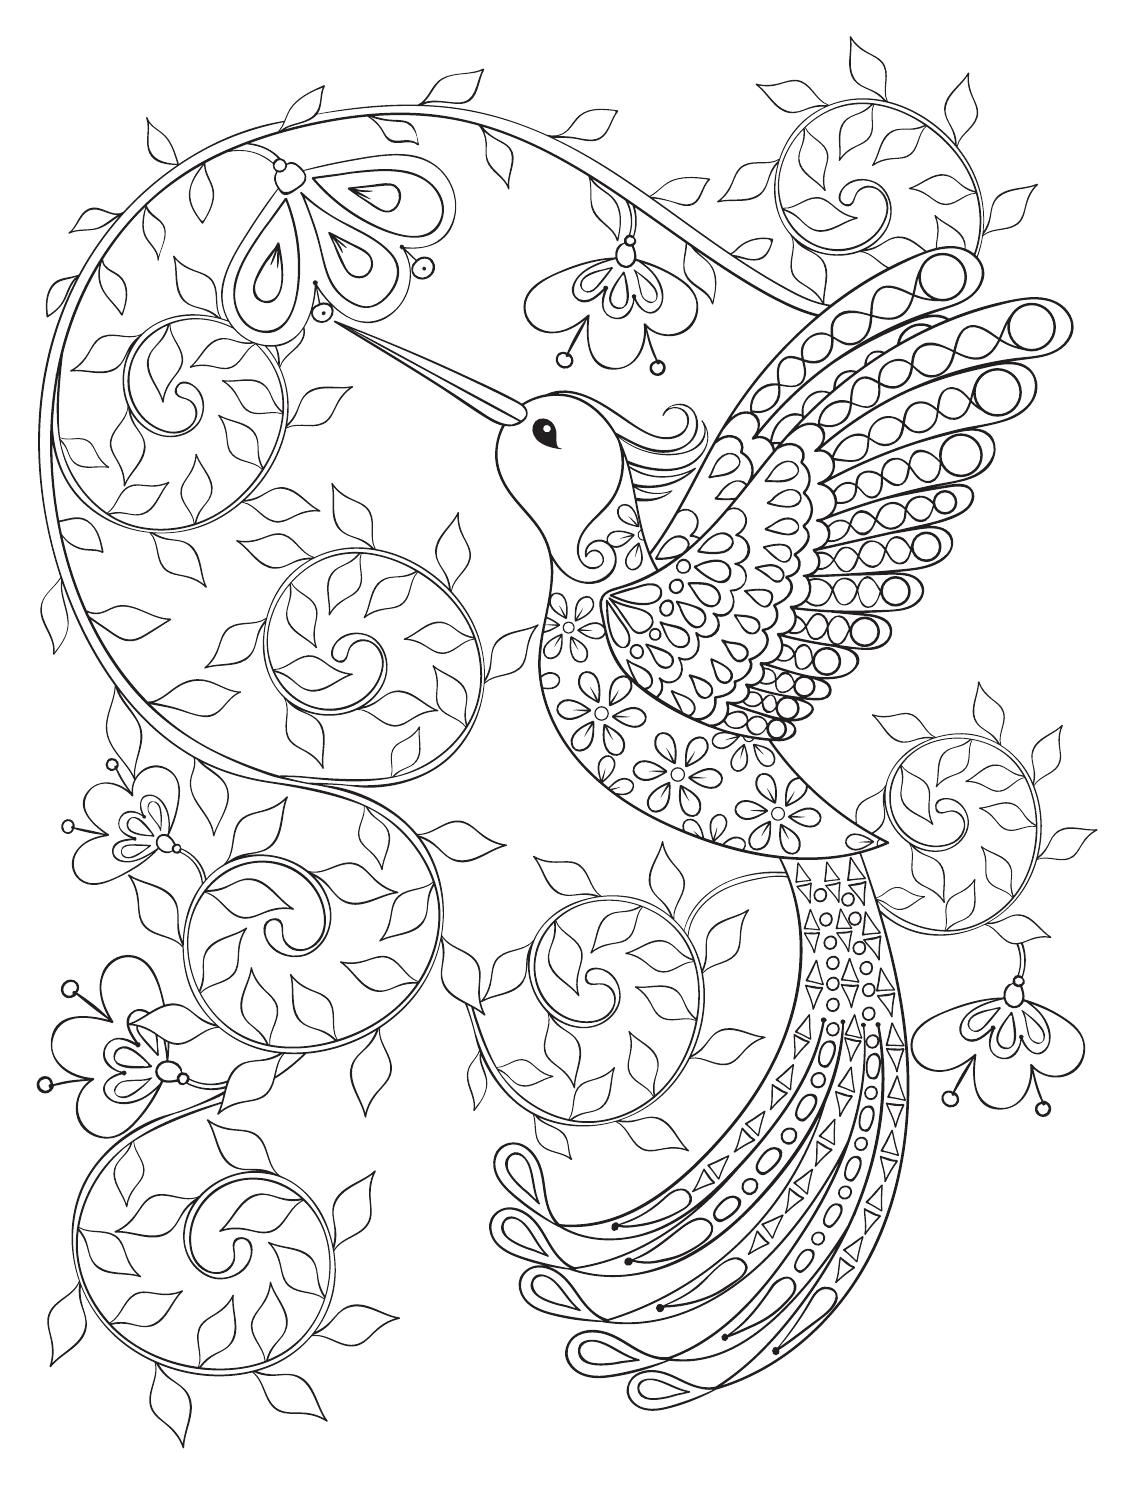 Christmas In July Coloring Book With Terapia Da Cor N 4 Adult Quilling And Mandala